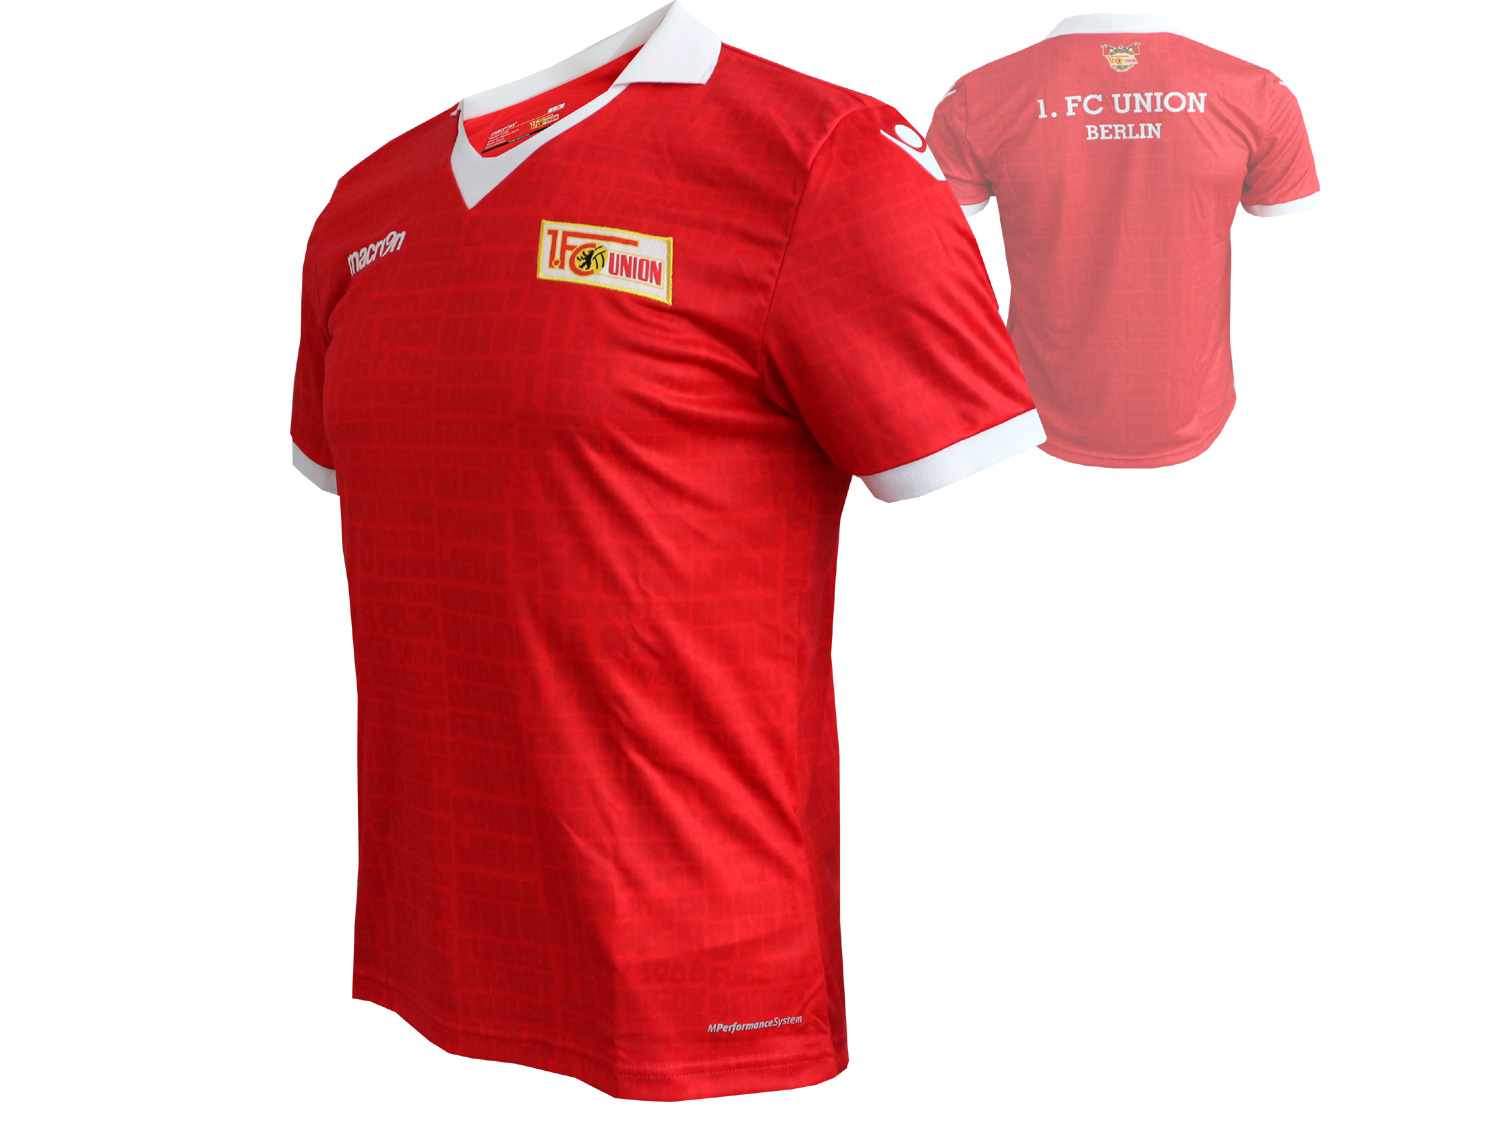 Macron 1.FC Union Berlin Jubiläums Jersey